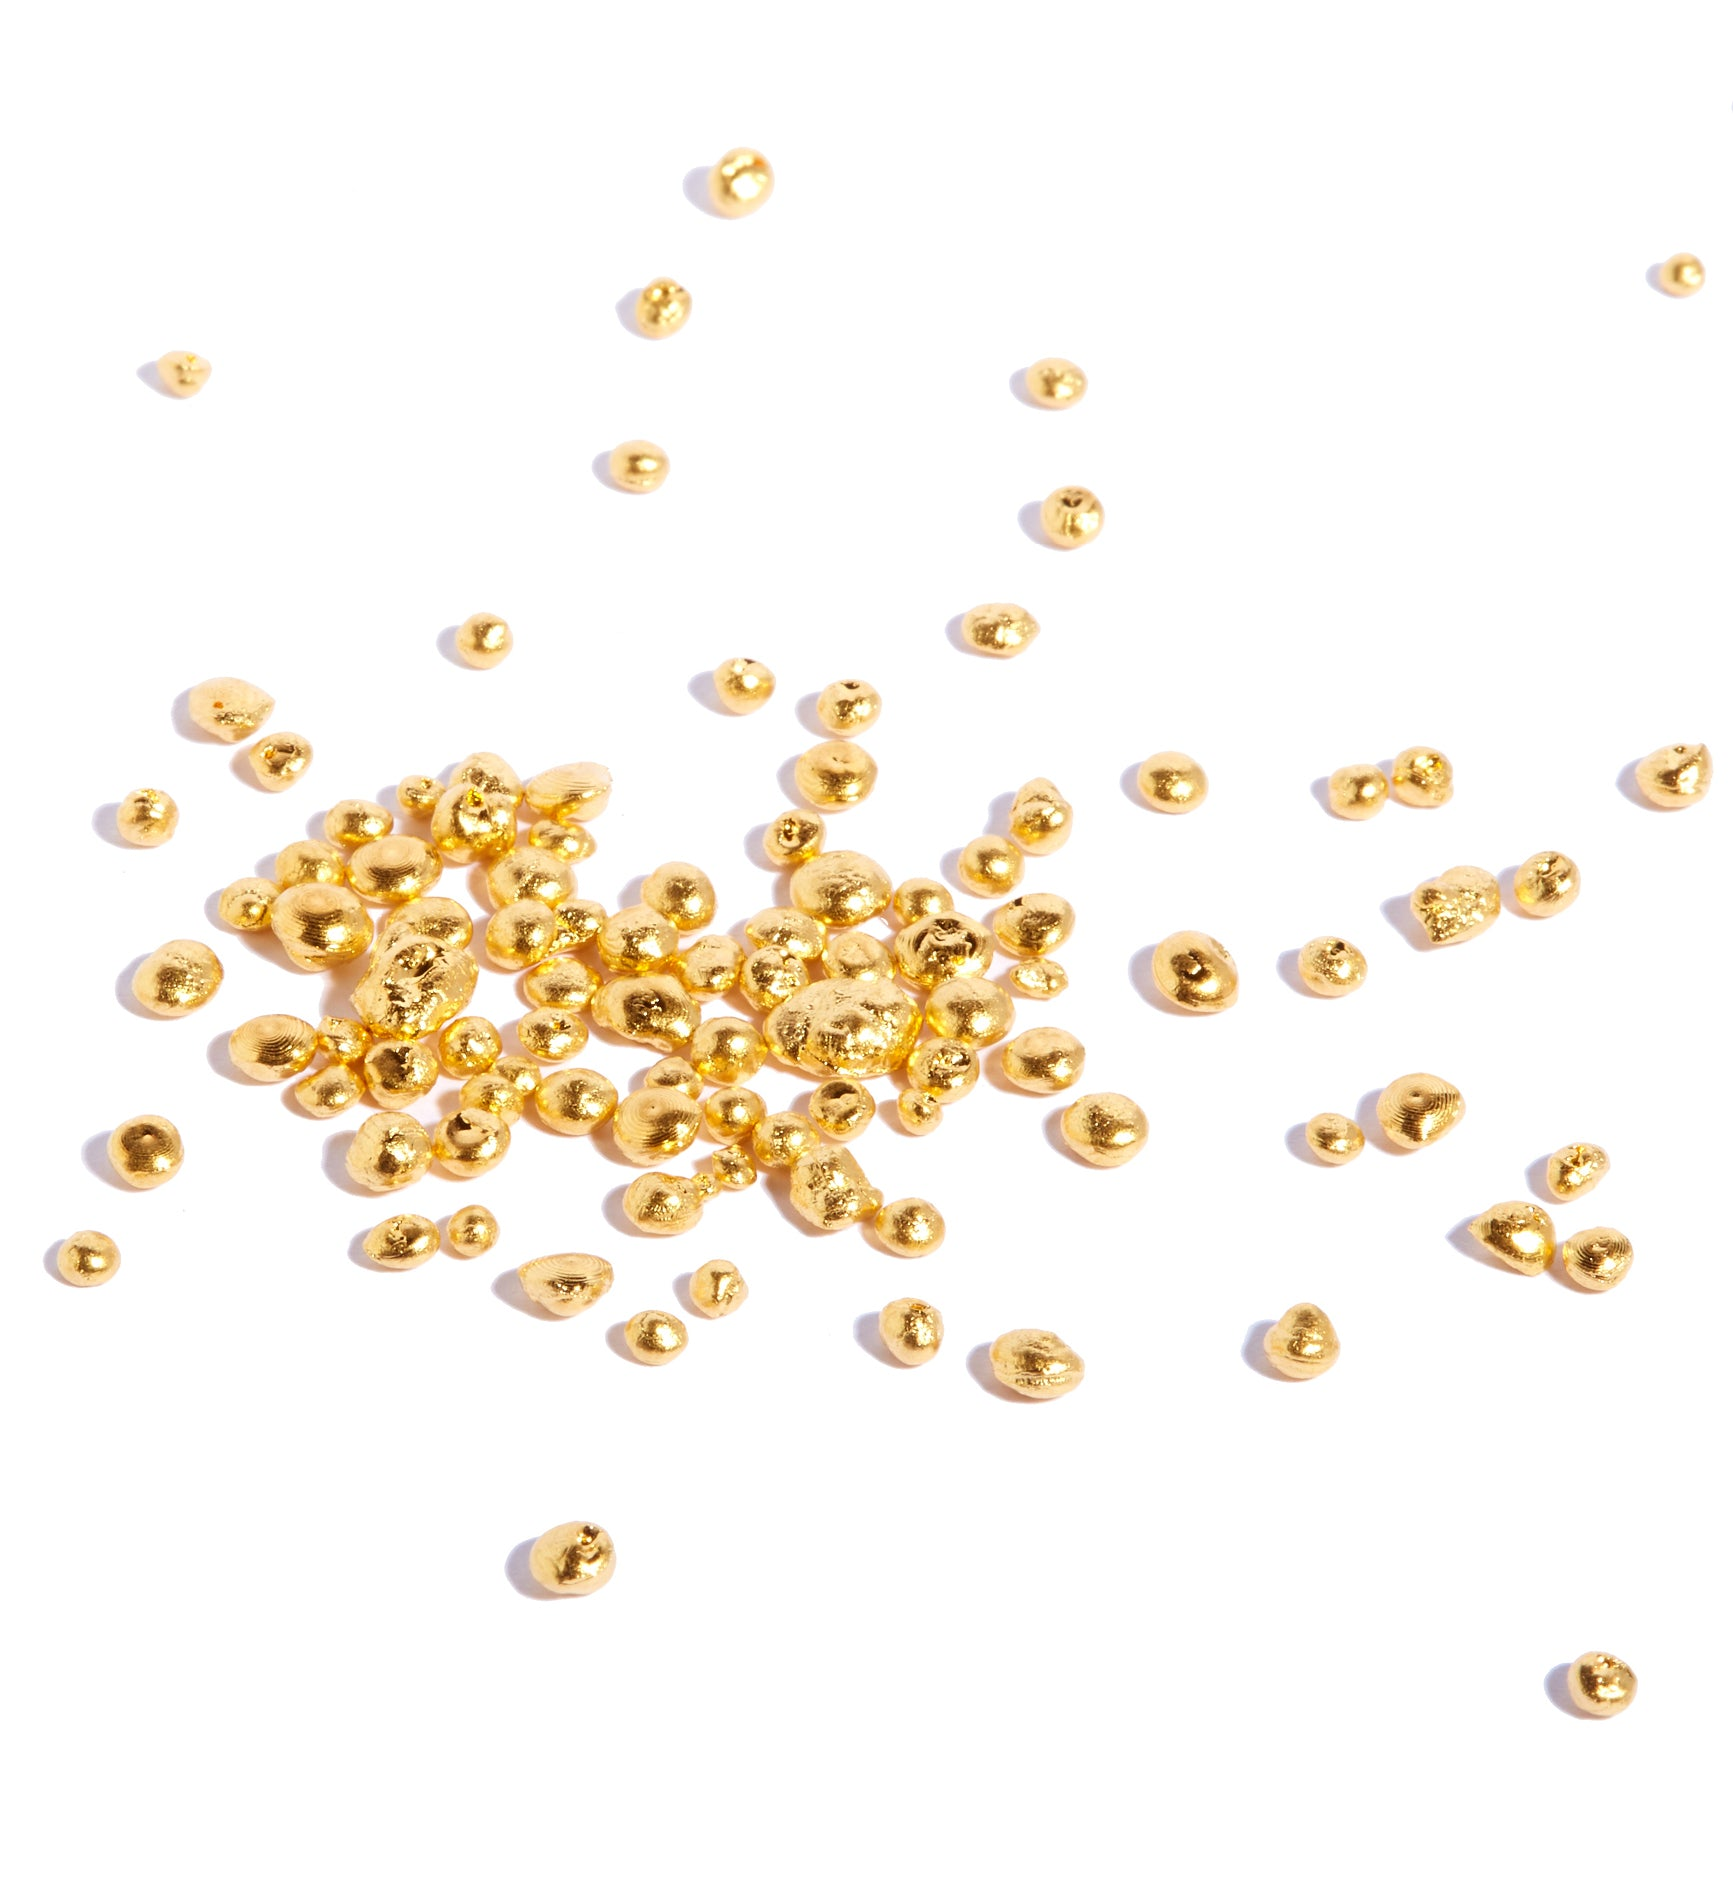 https://cdn.shopify.com/s/files/1/0571/9261/t/15/assets/gold%20granules-1509589103354.jpg?649422476018684901